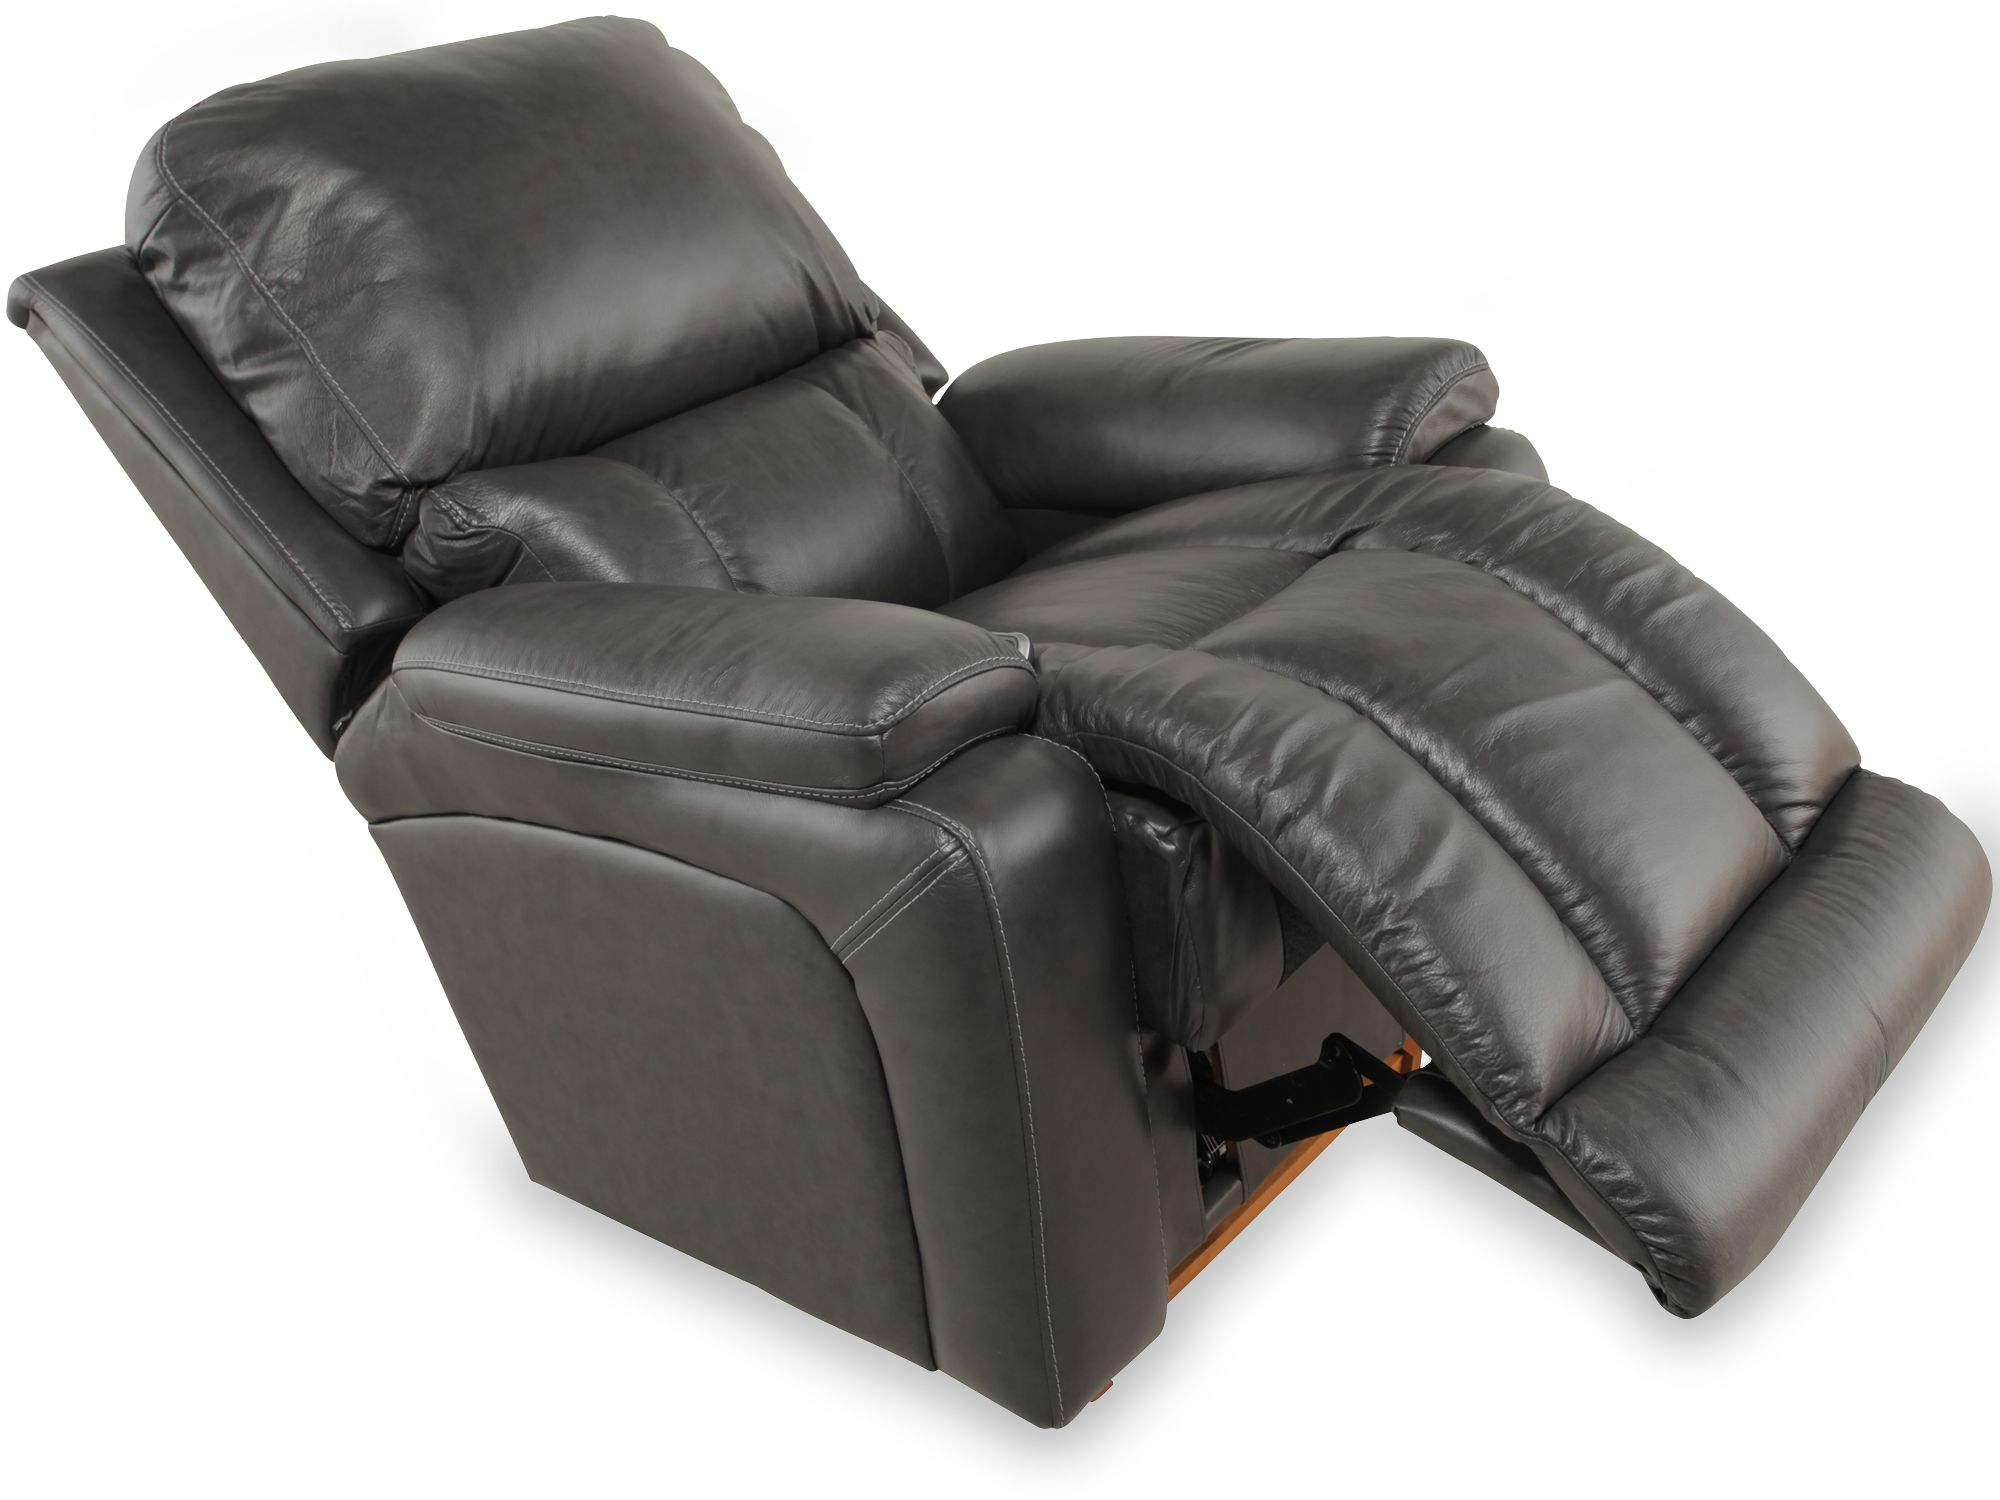 LaZBoy debuts rechargeable batteries for Power Recliners